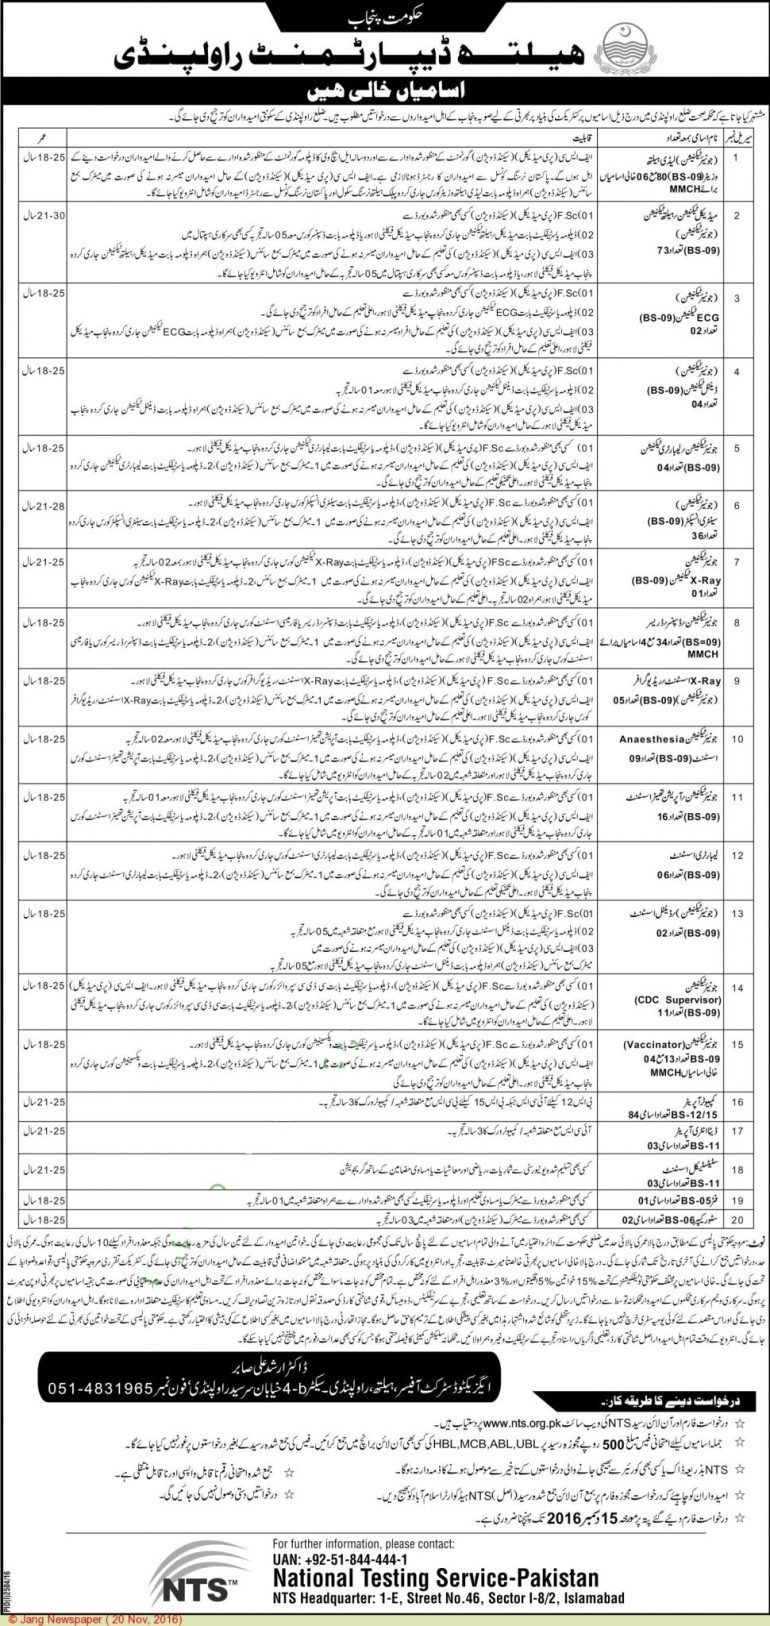 health-department-rawalpindi-jobs-detailed-information-november-2016